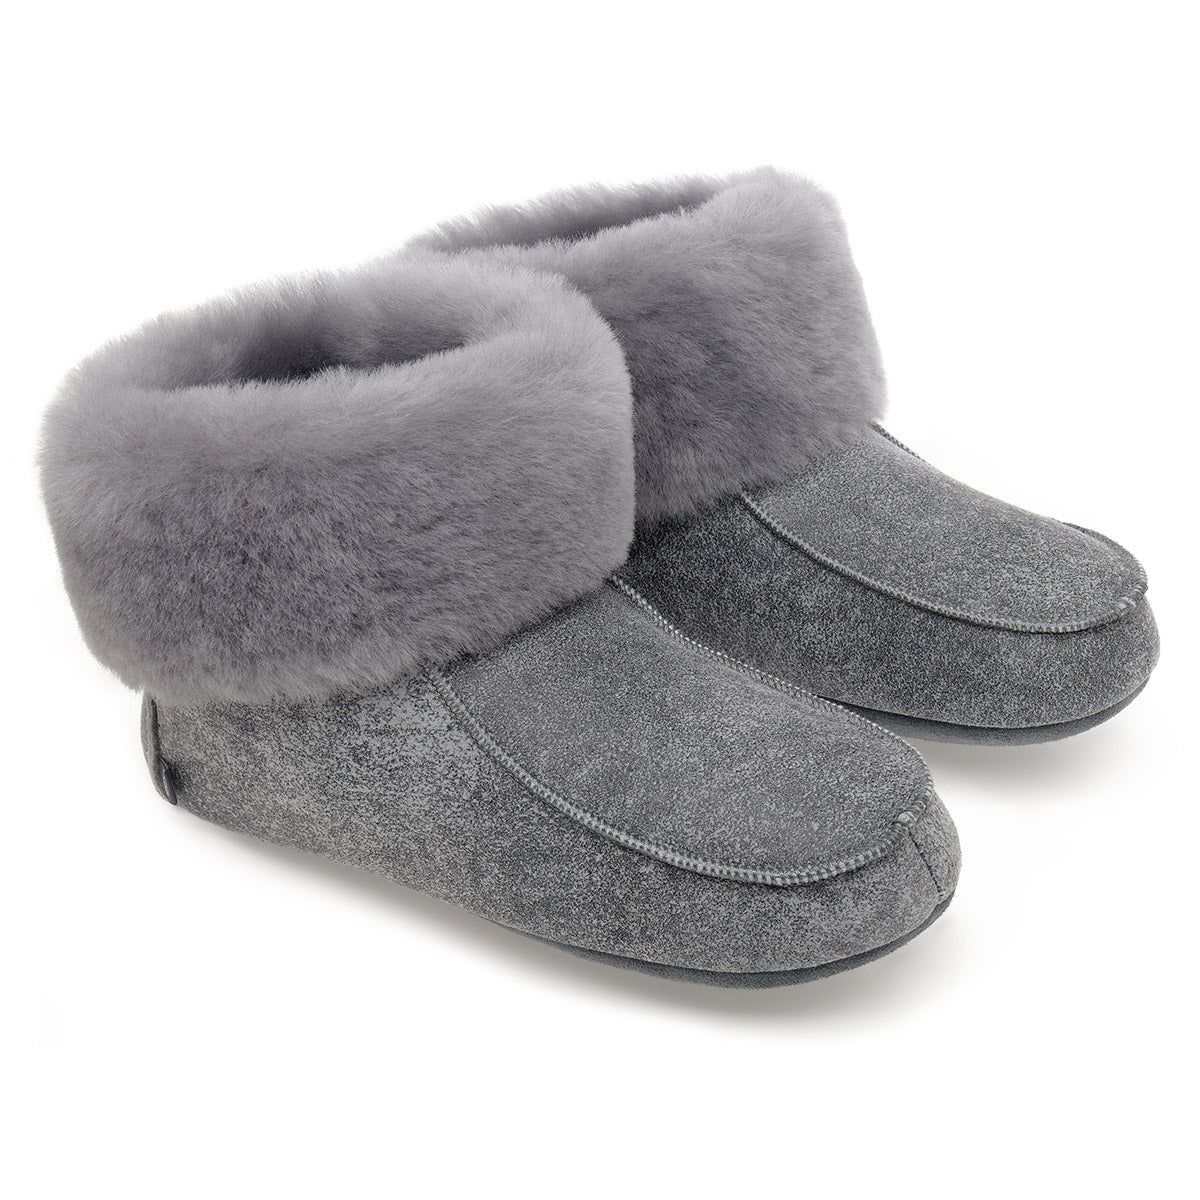 NEW Aster Sheepskin Slippers - Grey Distressed Leather